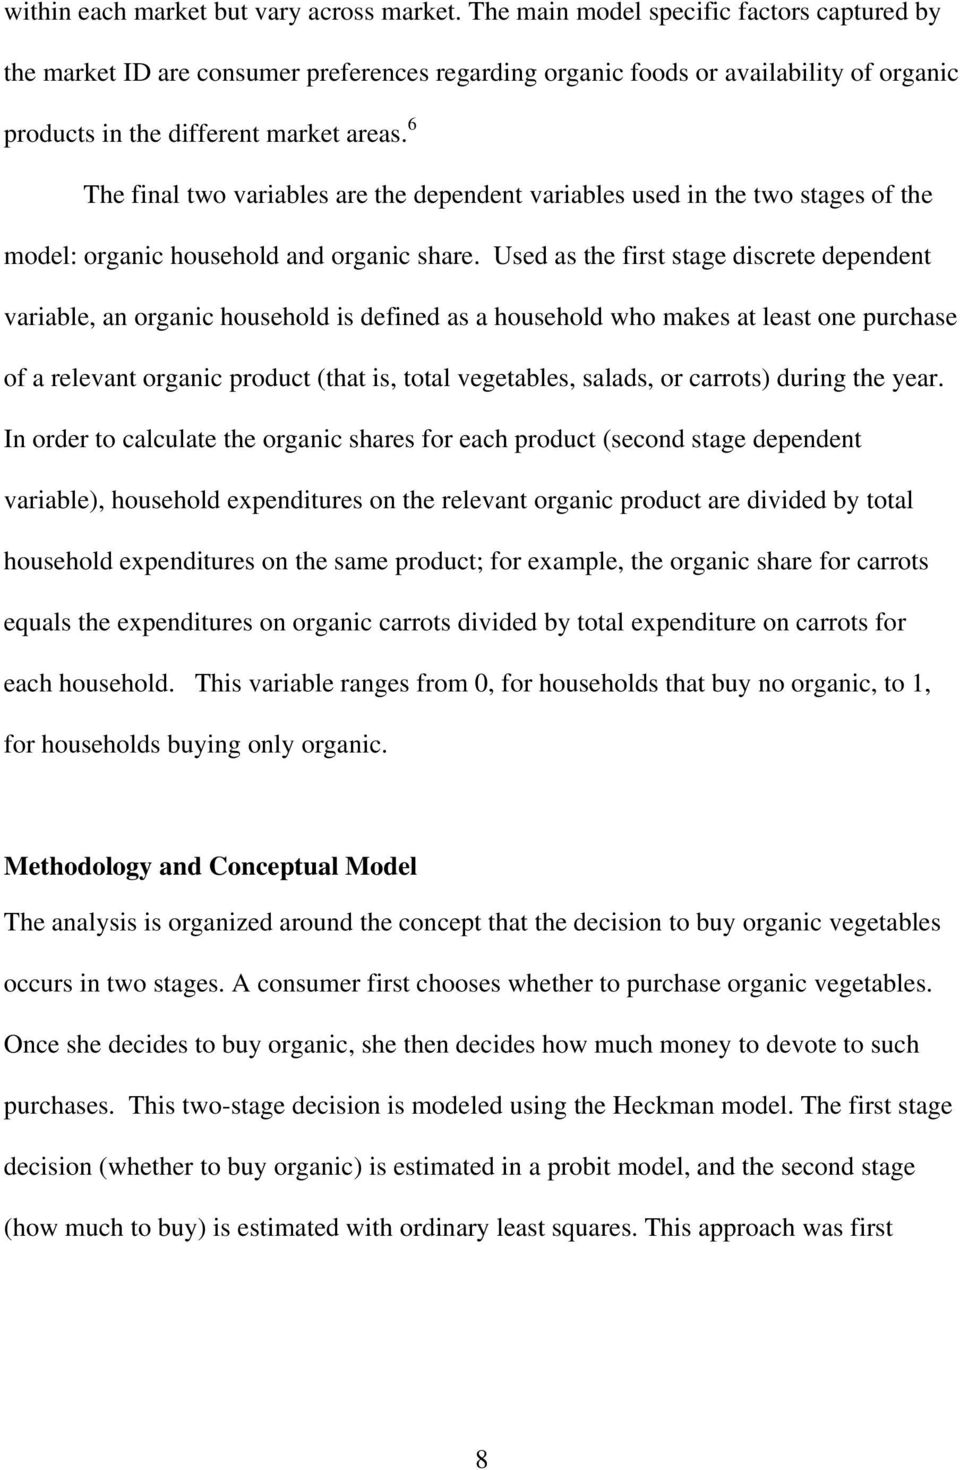 6 The final two variables are the dependent variables used in the two stages of the model: organic household and organic share.